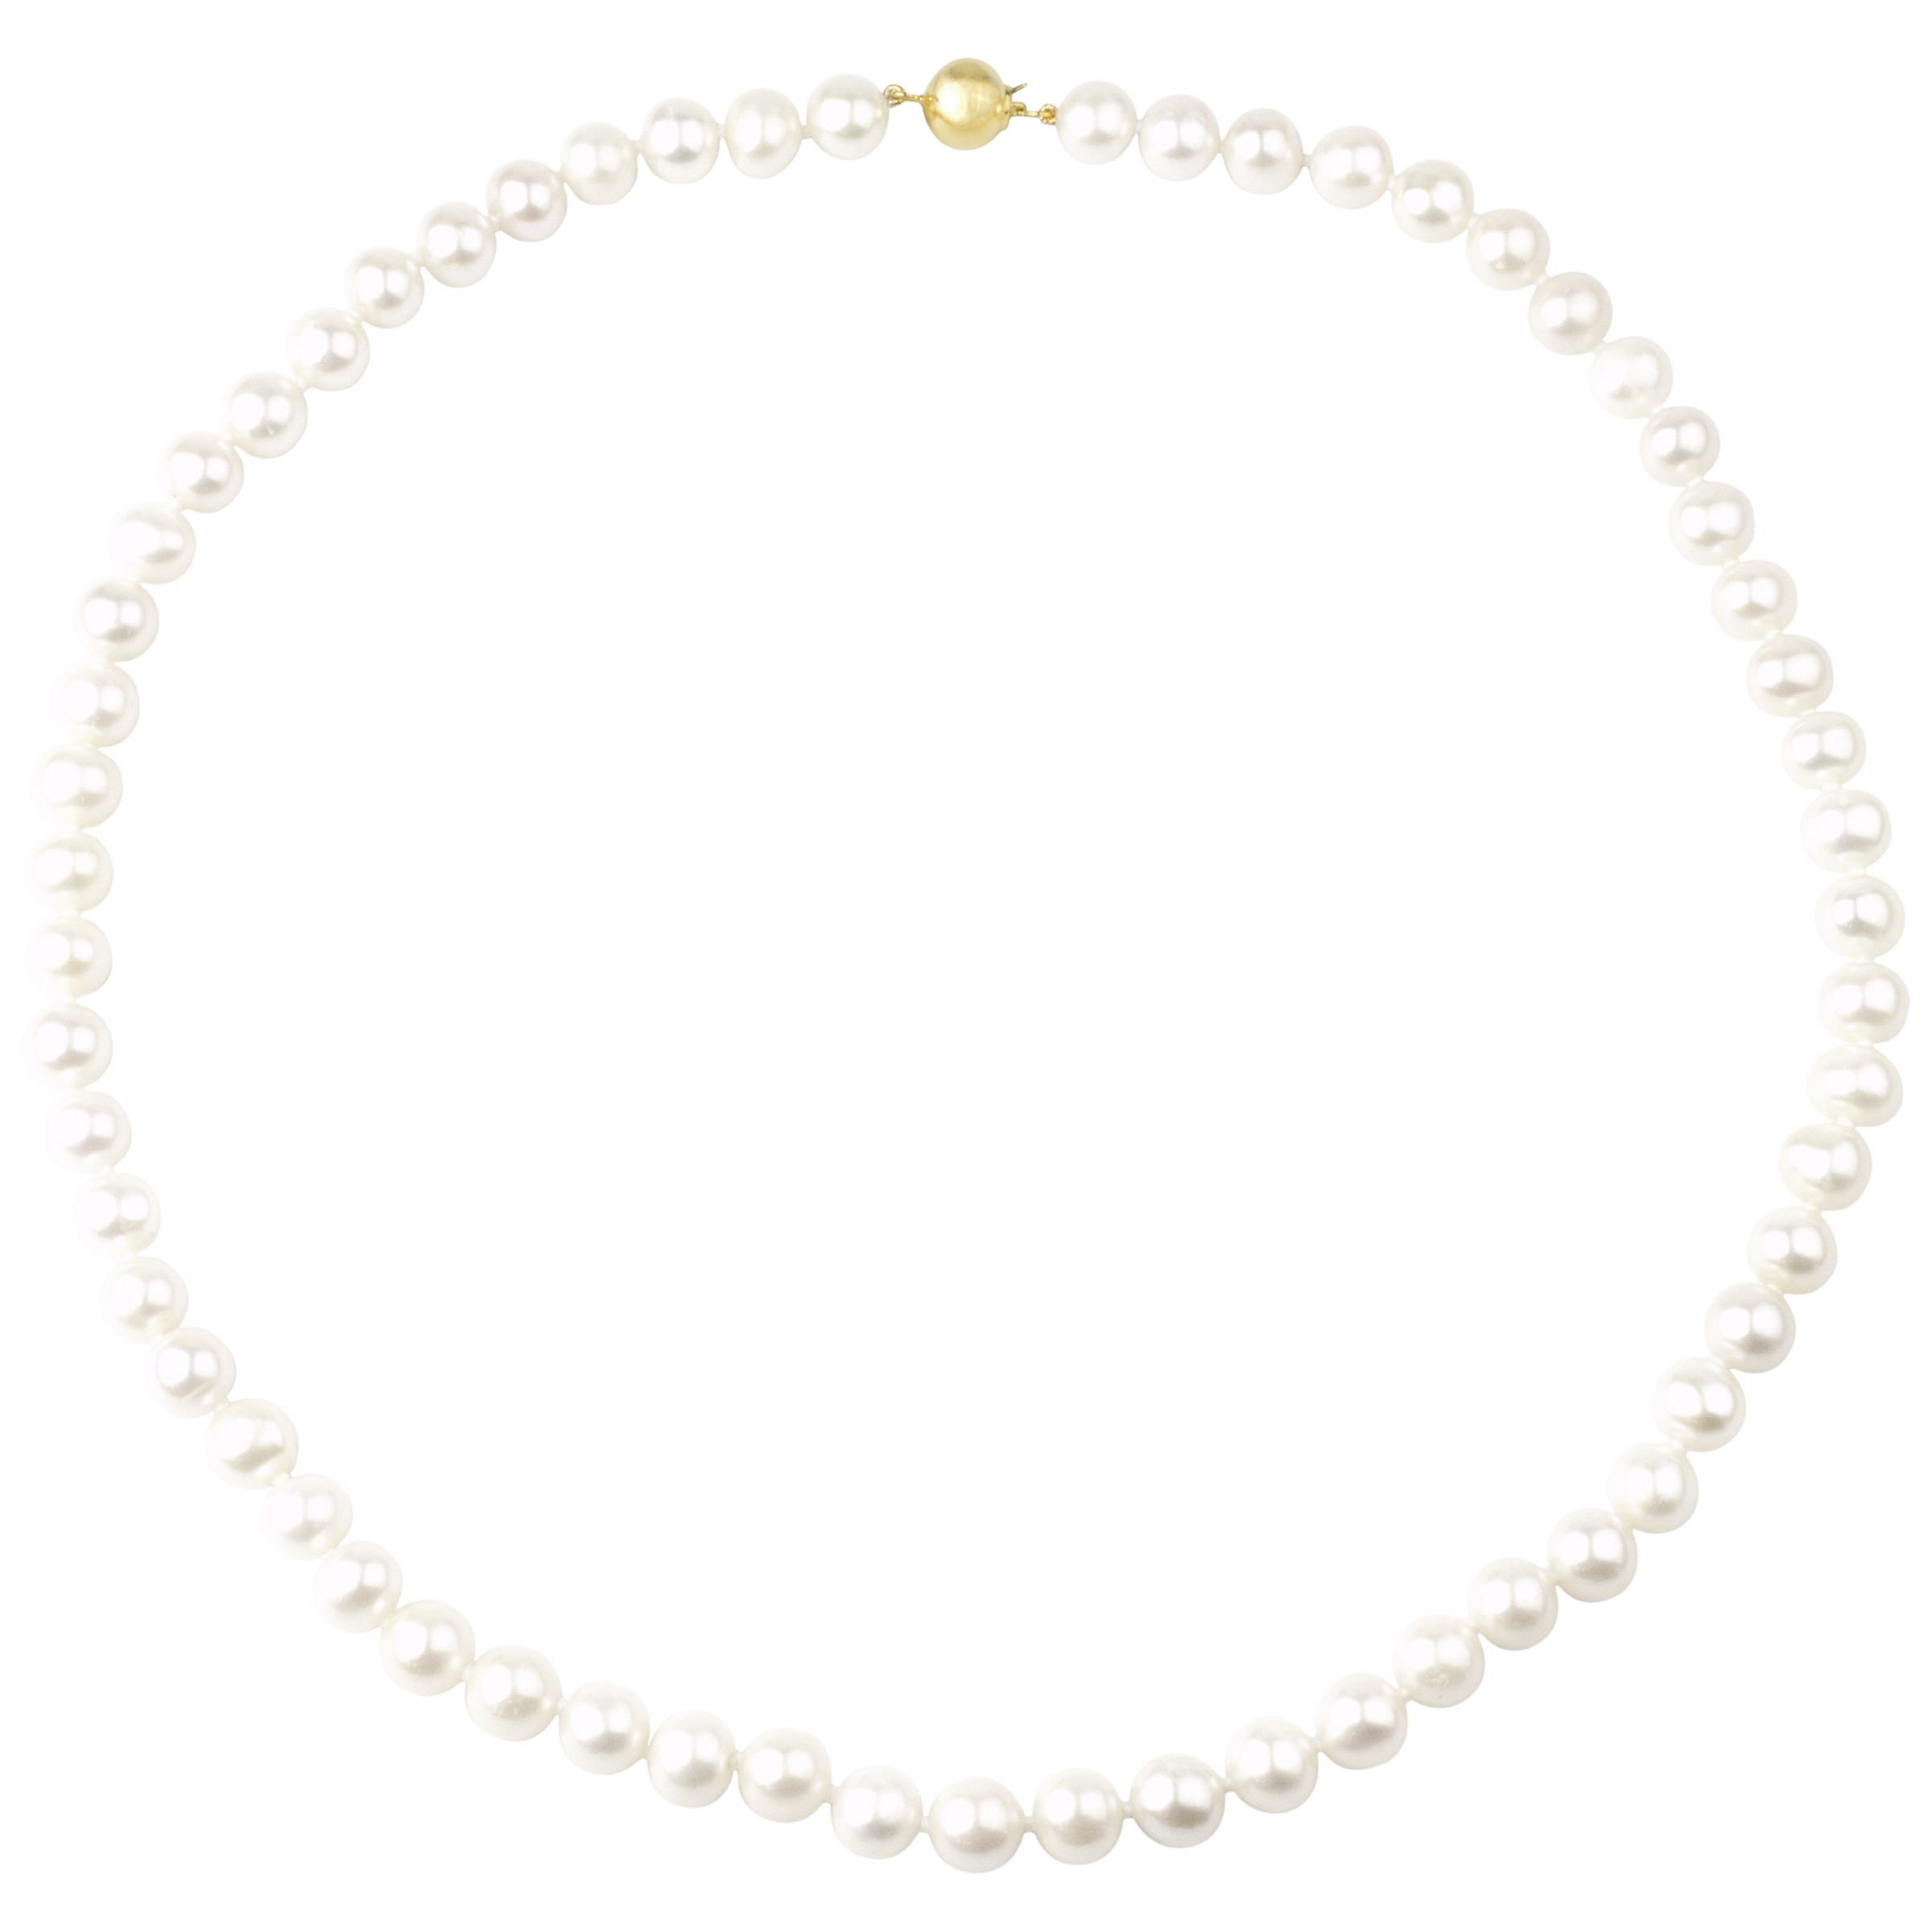 "Freshwater Lustre Pearls Knotted 18"" Necklace with Gold Clasp at JohnLewis"